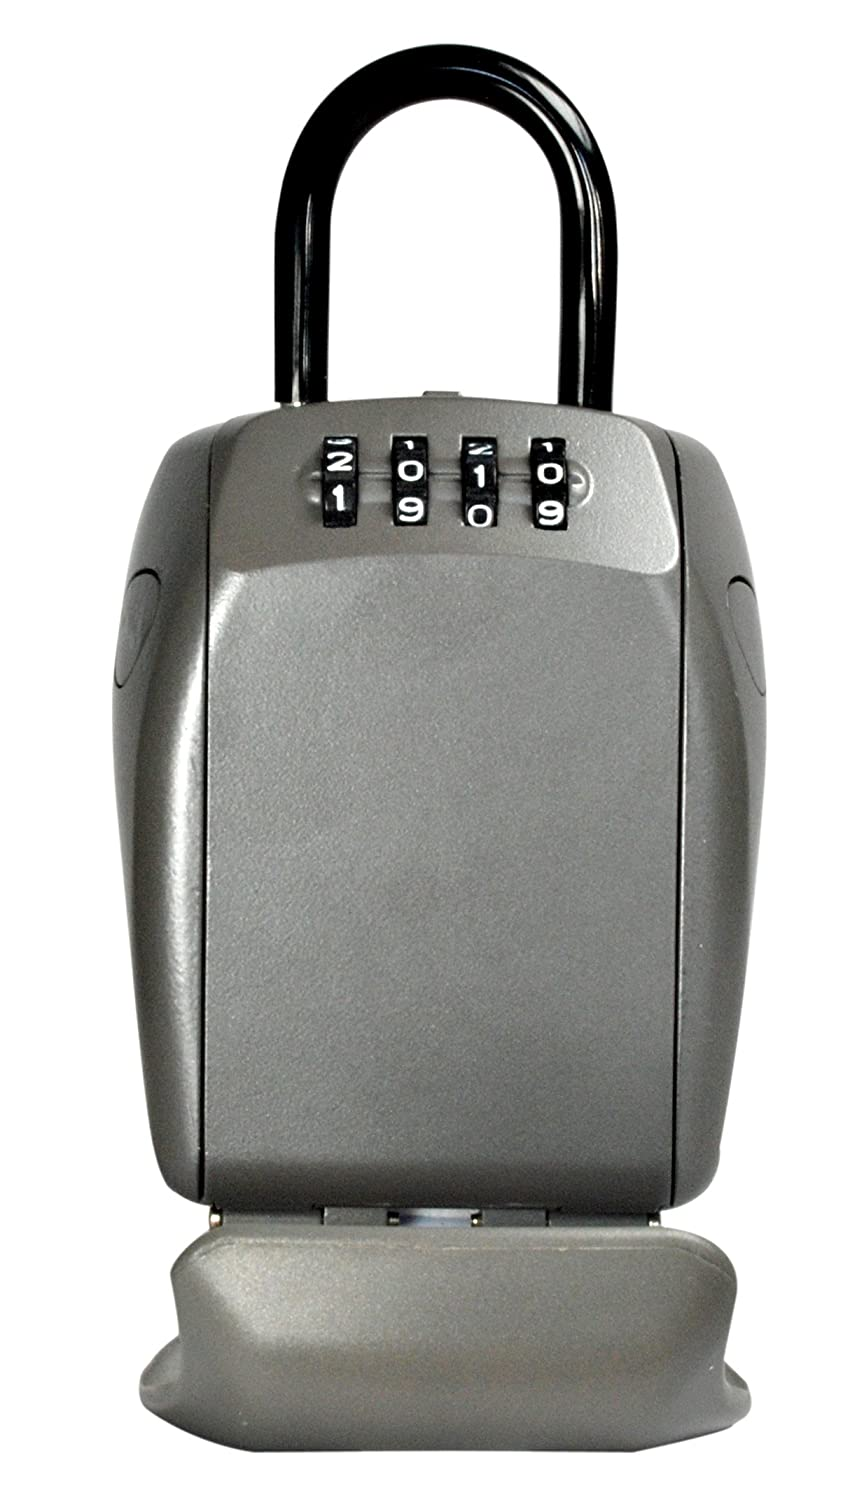 Master Lock Lock Box, Set Your Own Combination Wall Mount Key Safe for Key and Access Card Storage MasterLock 5414D